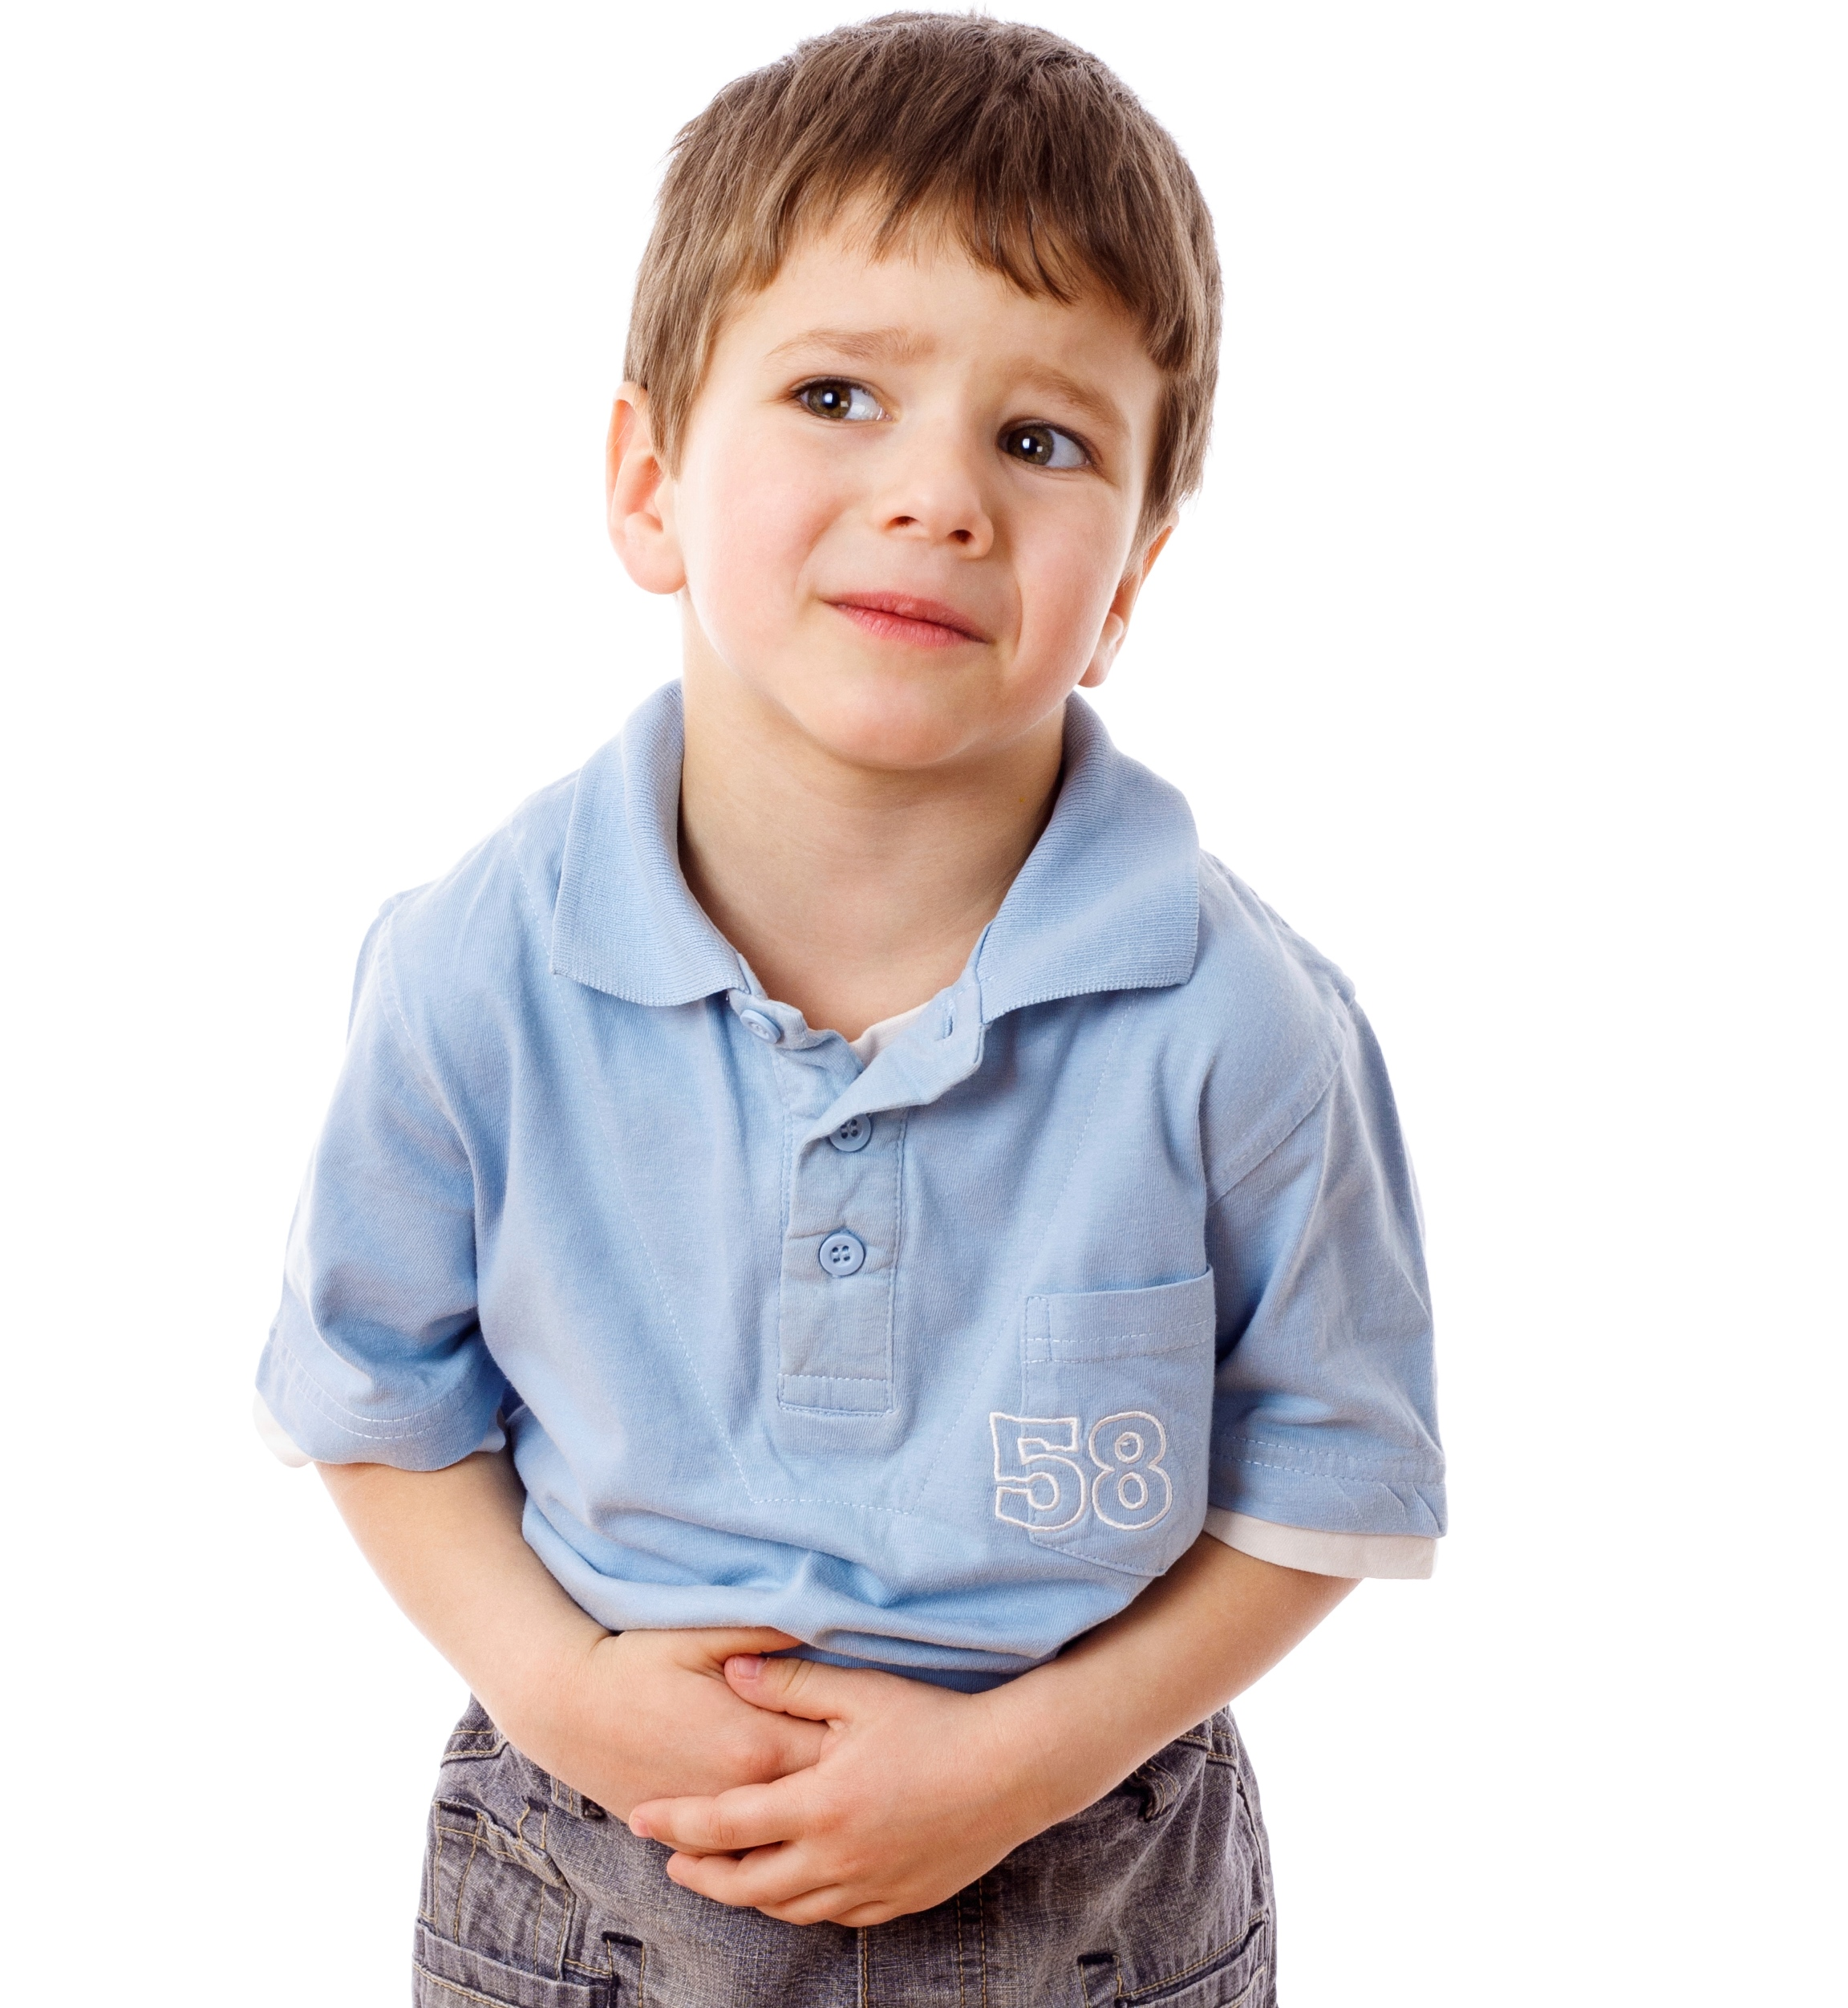 Best Food For Toddler Upset Stomach